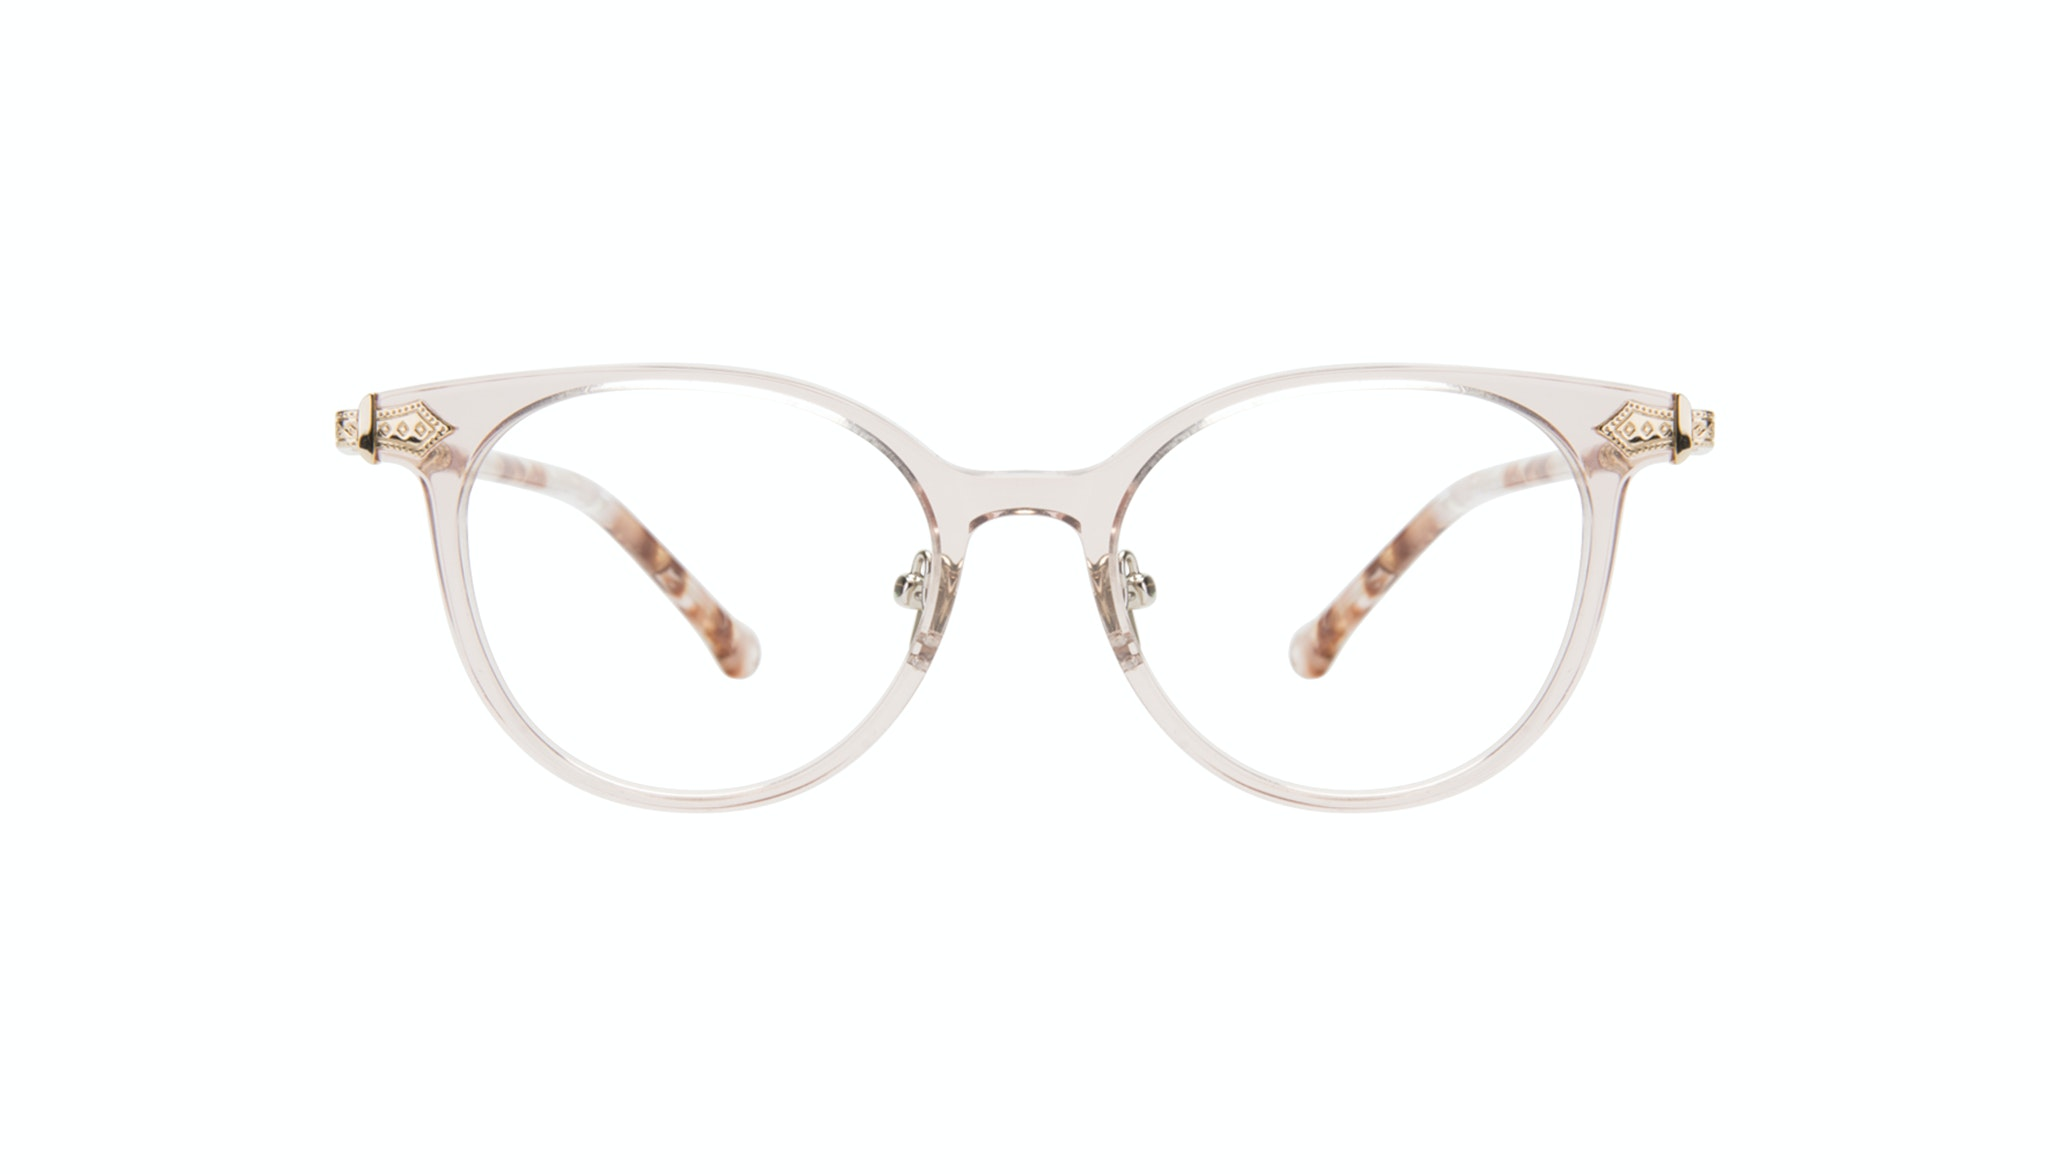 Affordable Fashion Glasses Round Eyeglasses Women Gem Pink Quartz